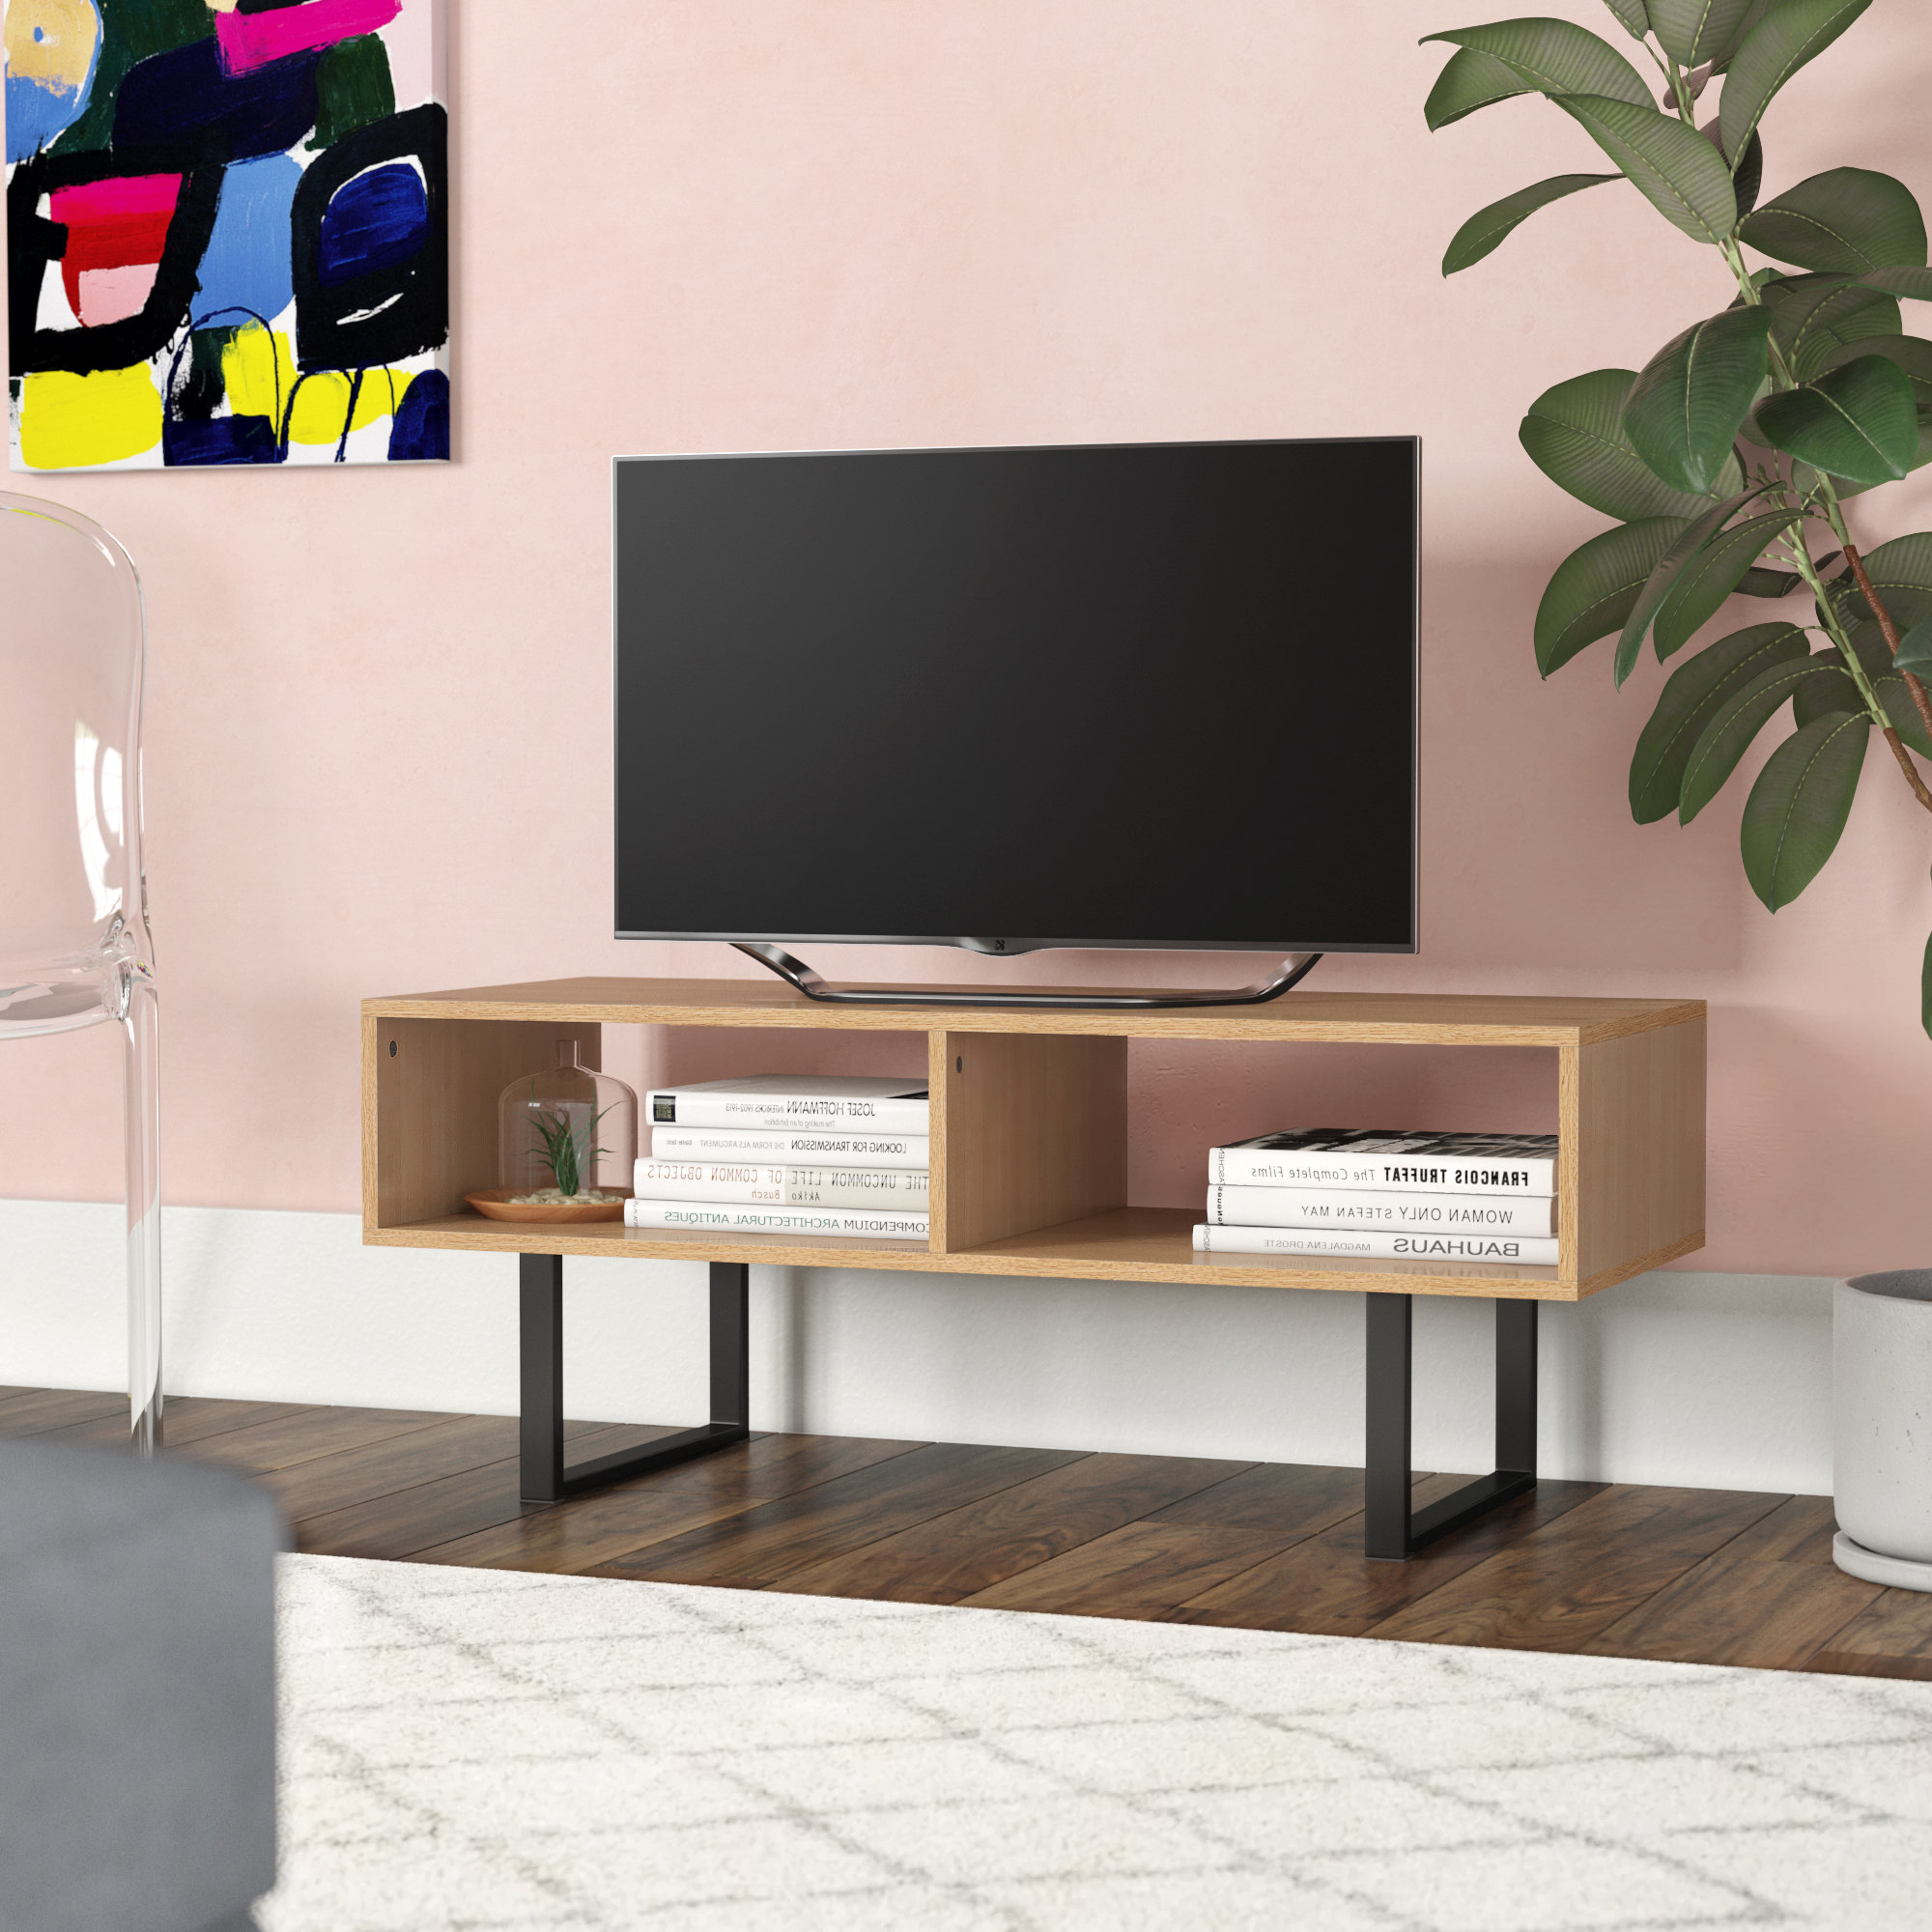 Most Recent Low (Up To 23 Inches) Tv Stands You'll Love (View 12 of 20)